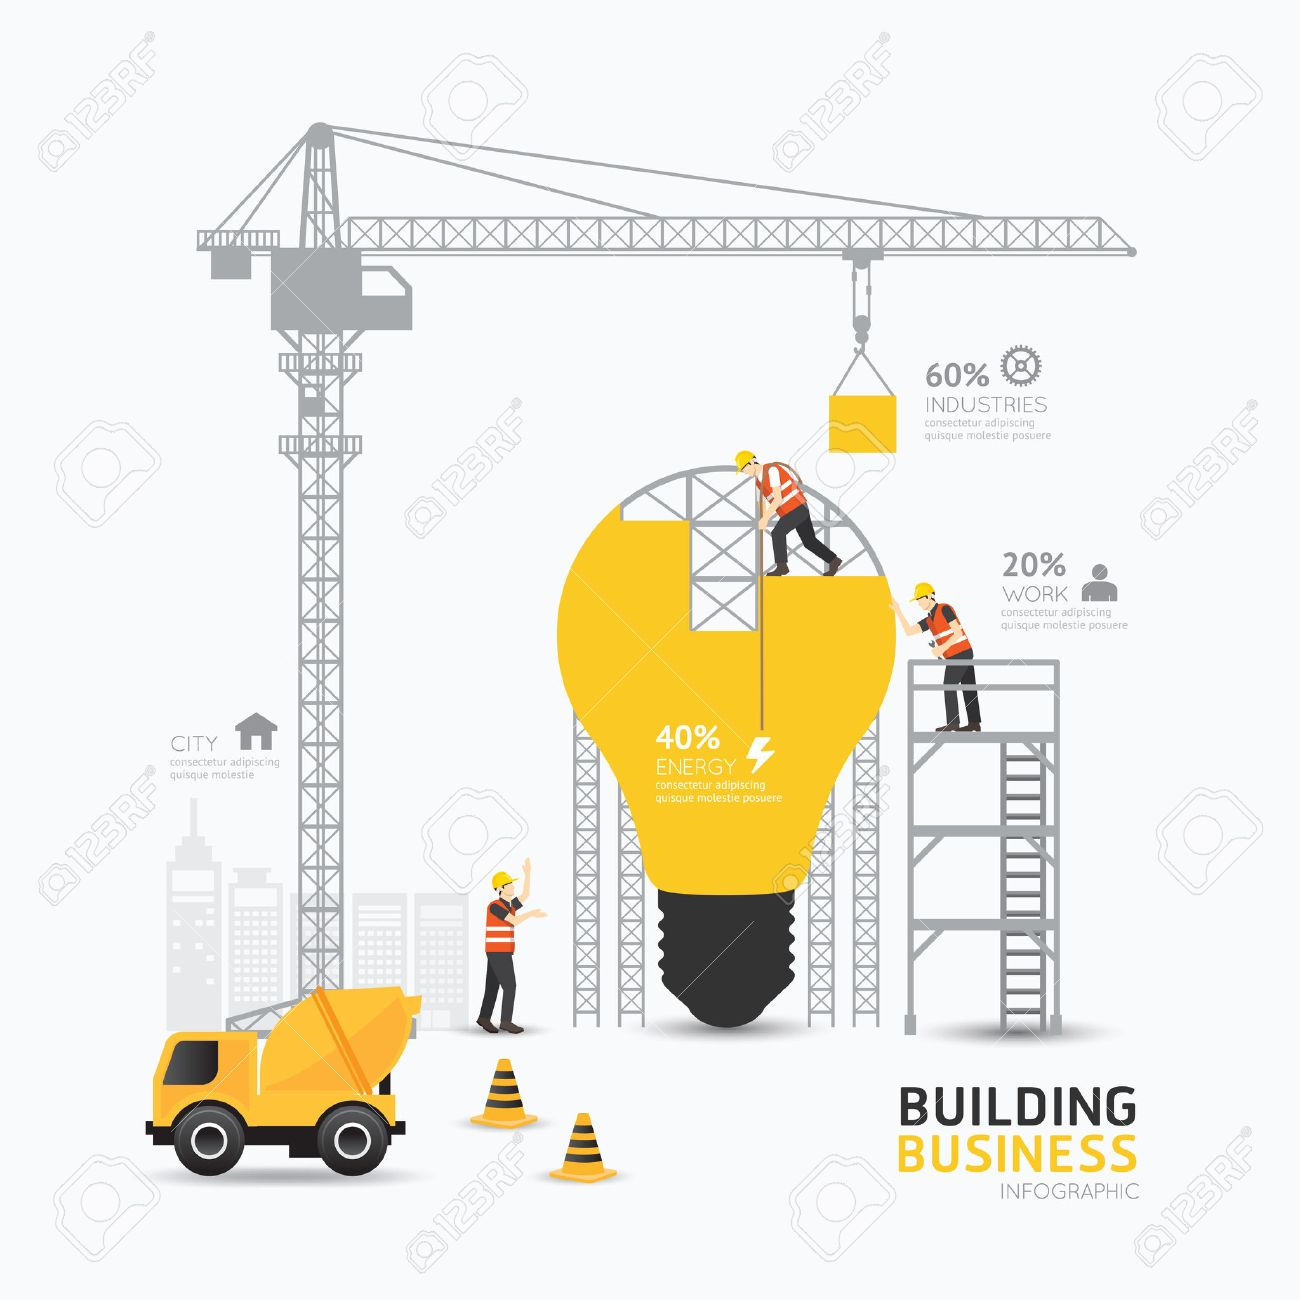 Infographic business light bulb shape template design.building to energy concept vector illustration / graphic or web design layout. Standard-Bild - 40686844